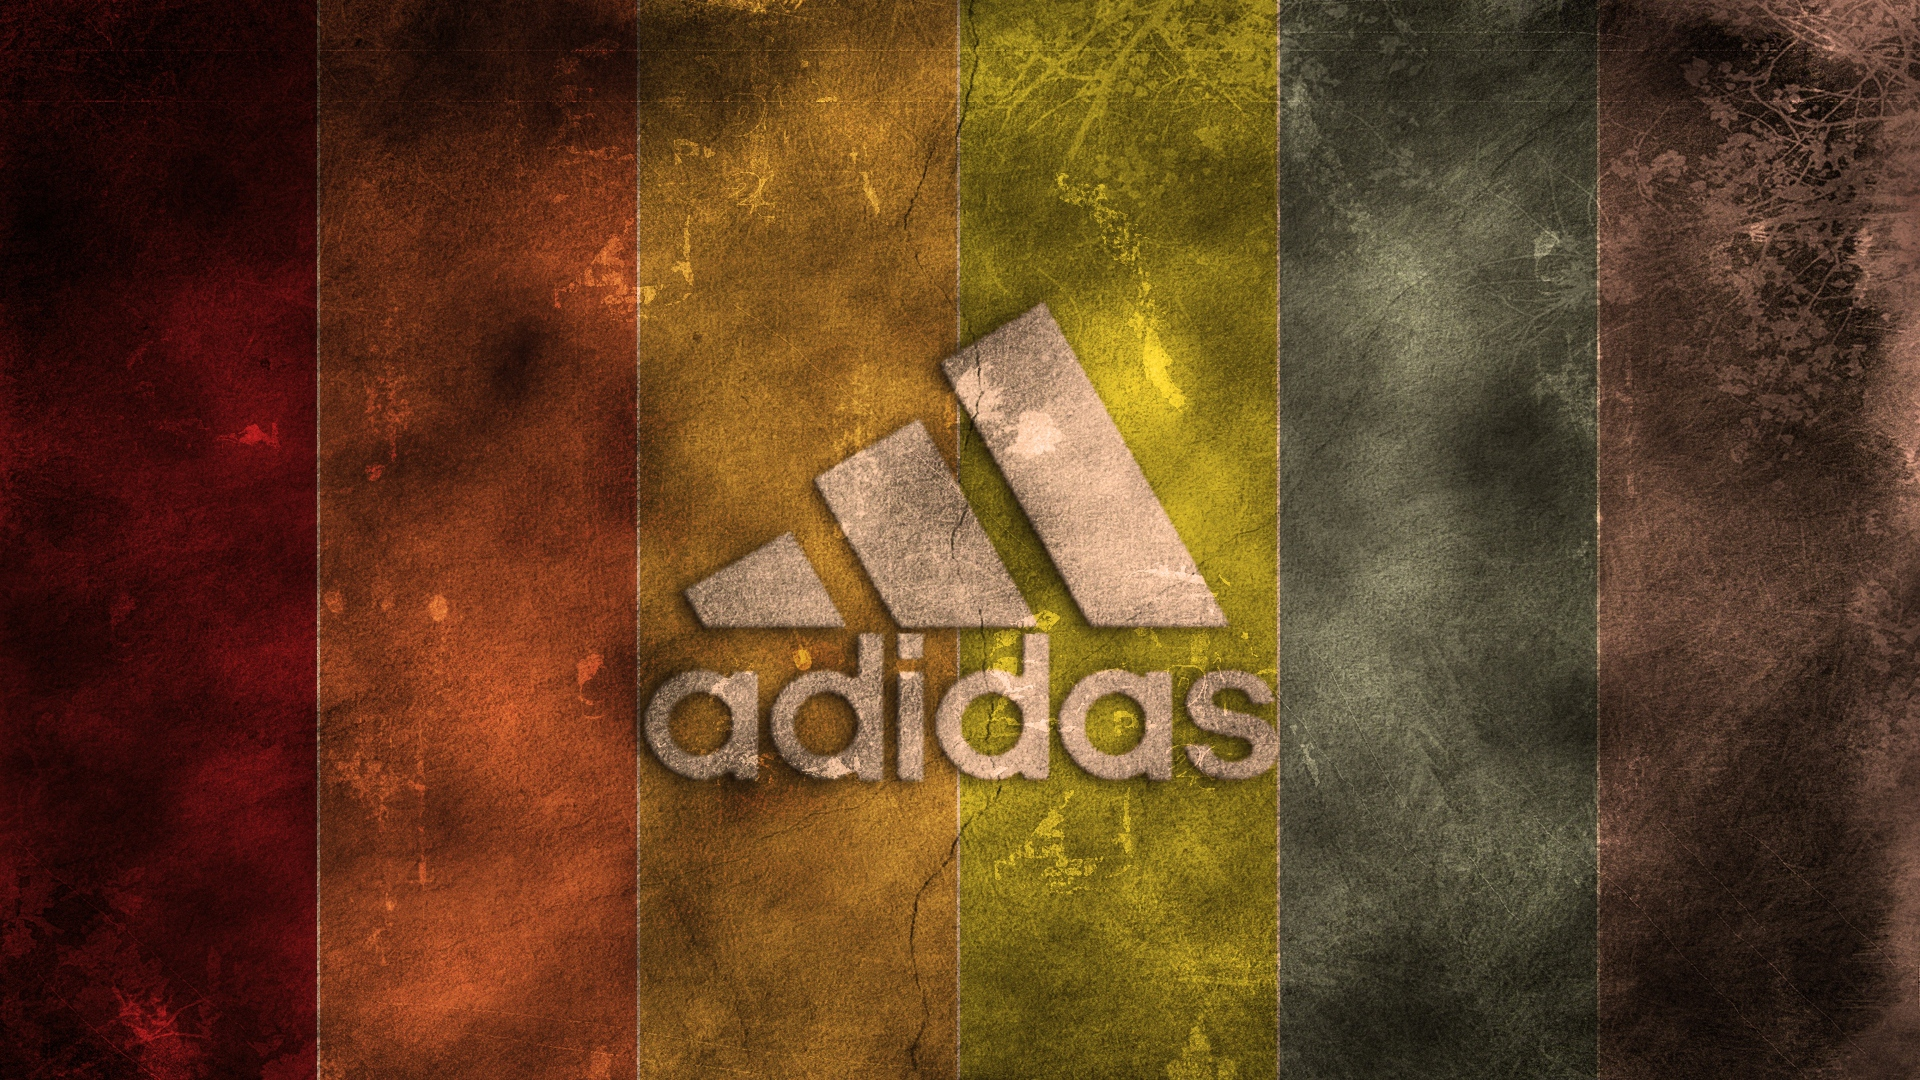 Earnings Disclaimer >> Download Wallpaper 1920x1080 brand, adidas, company, clothing, shoes, sports Full HD 1080p HD ...